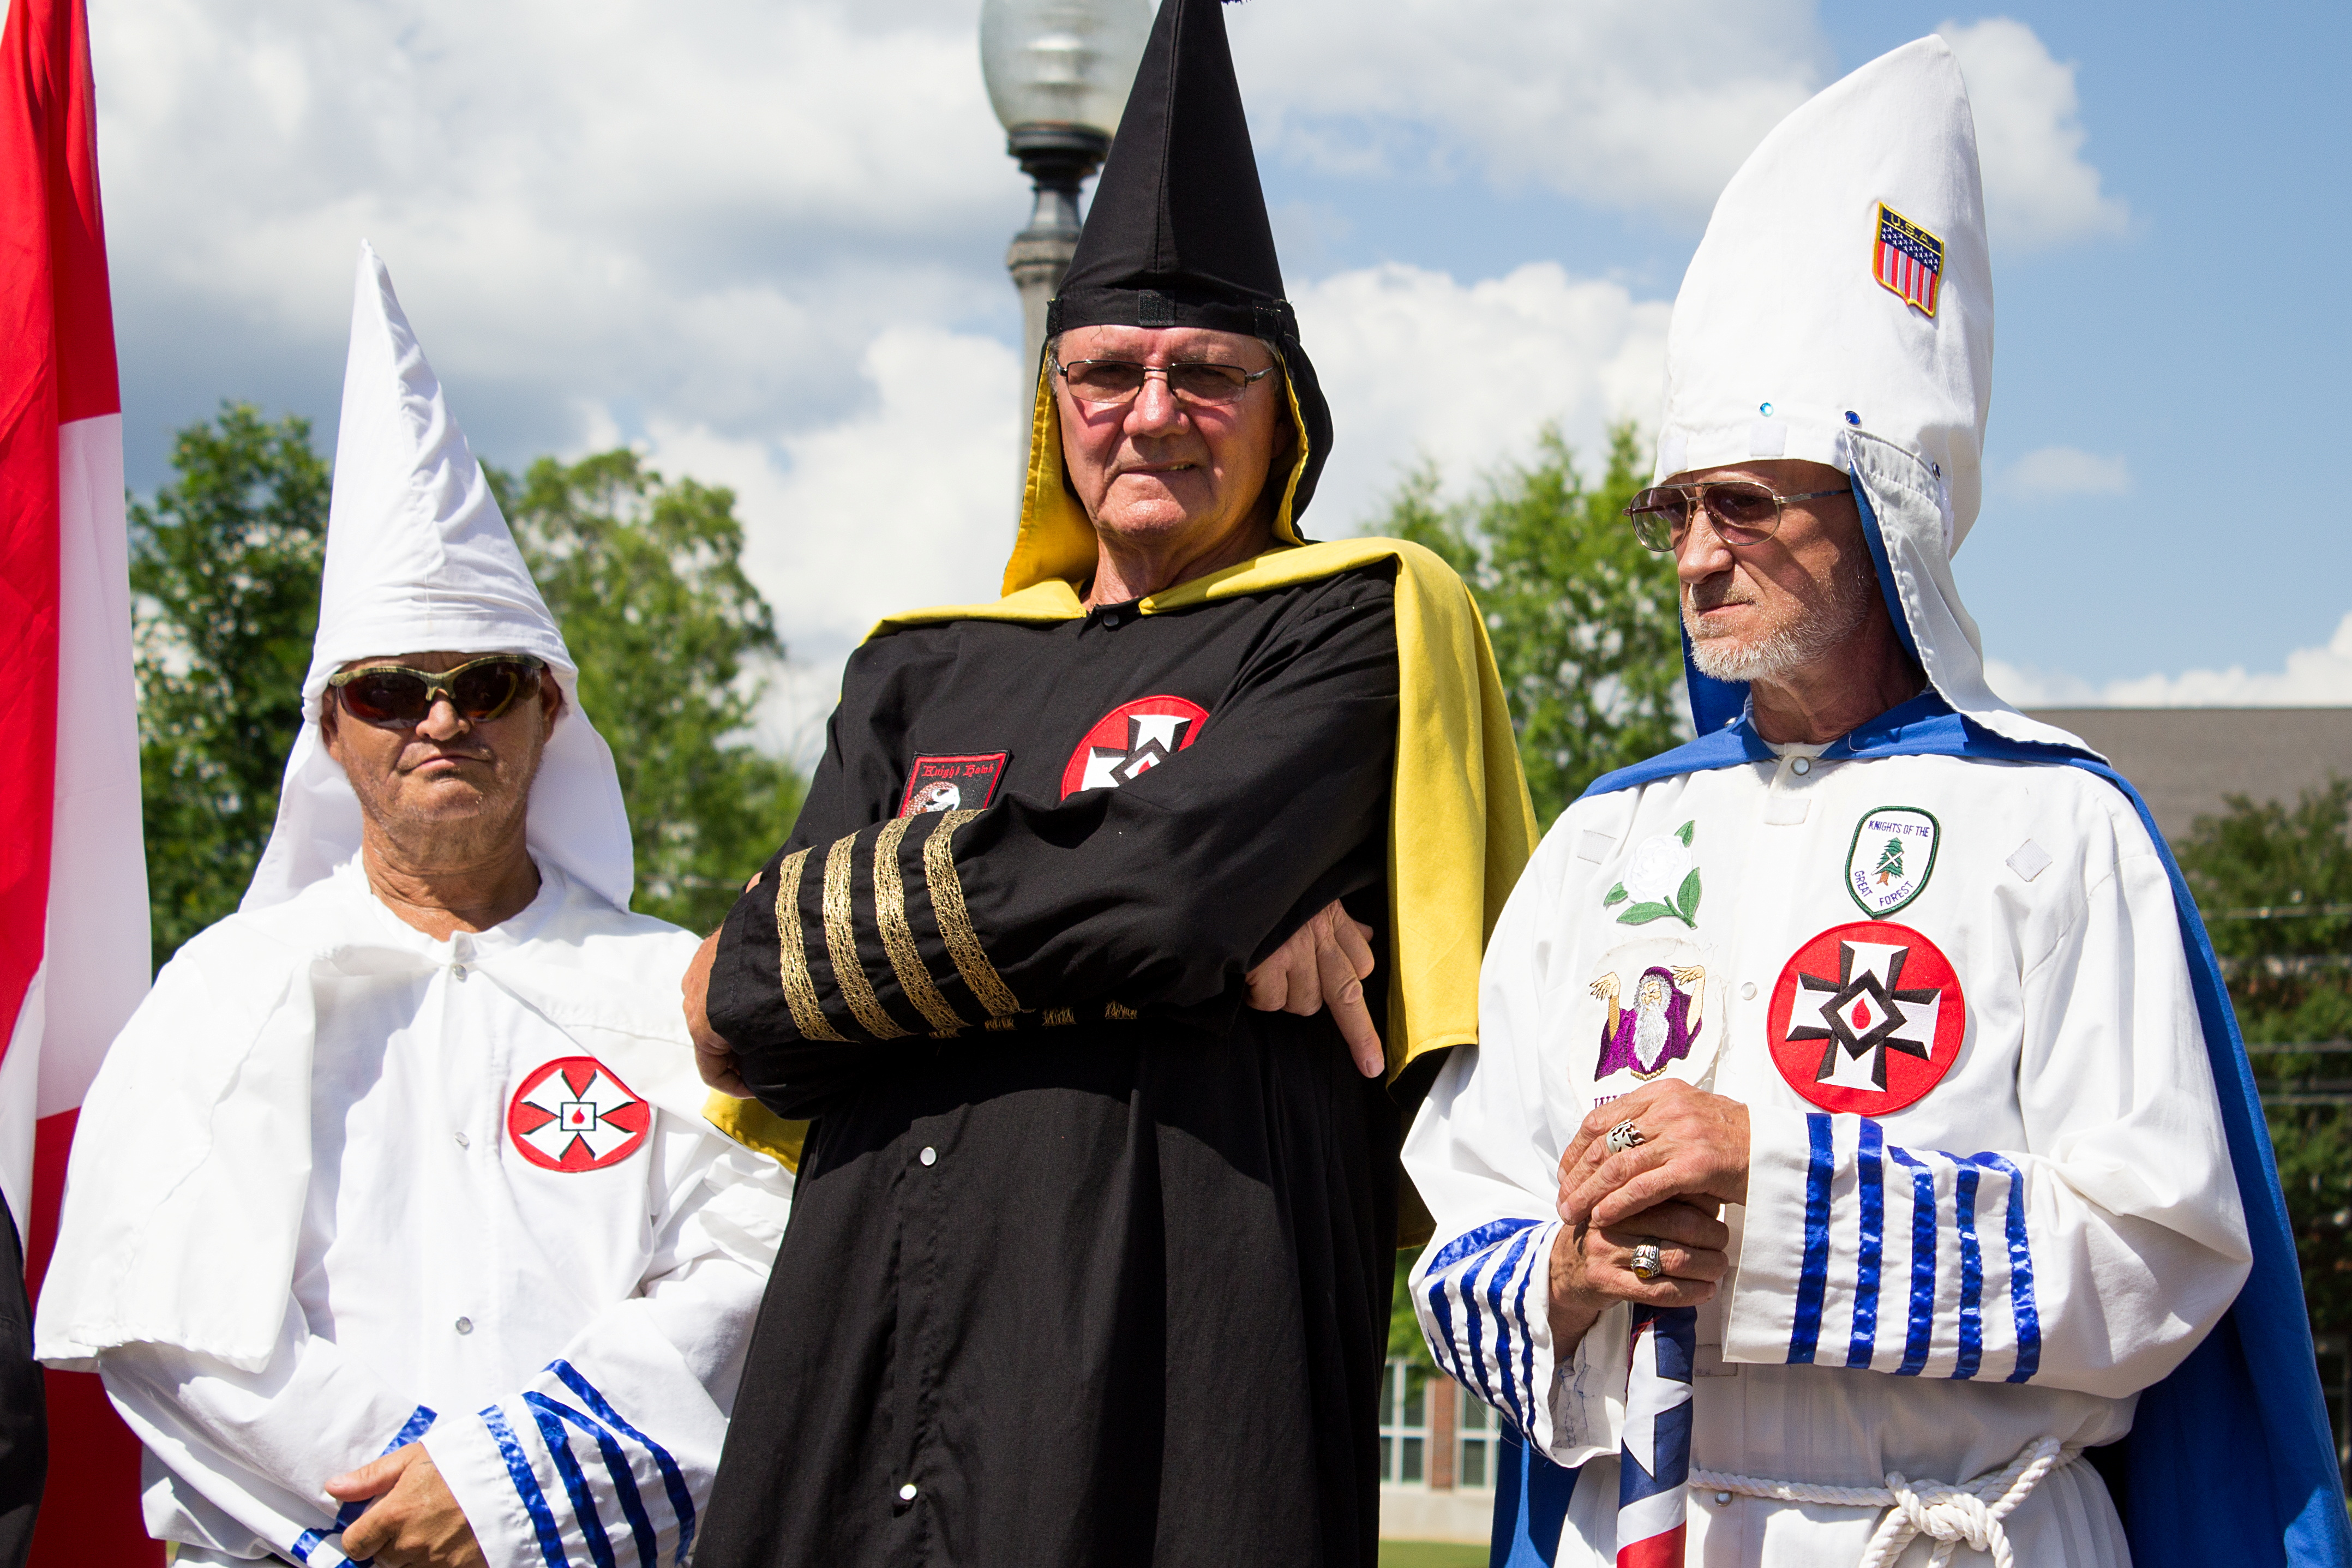 Members of the Ku Klux Klan in full regalia disrupt a speech by Camille Bennett at a Pride event in Wilson Park in Florence, Alabama, U.S., June 11, 2017.  Trevor Kiddy/Handout via REUTERS